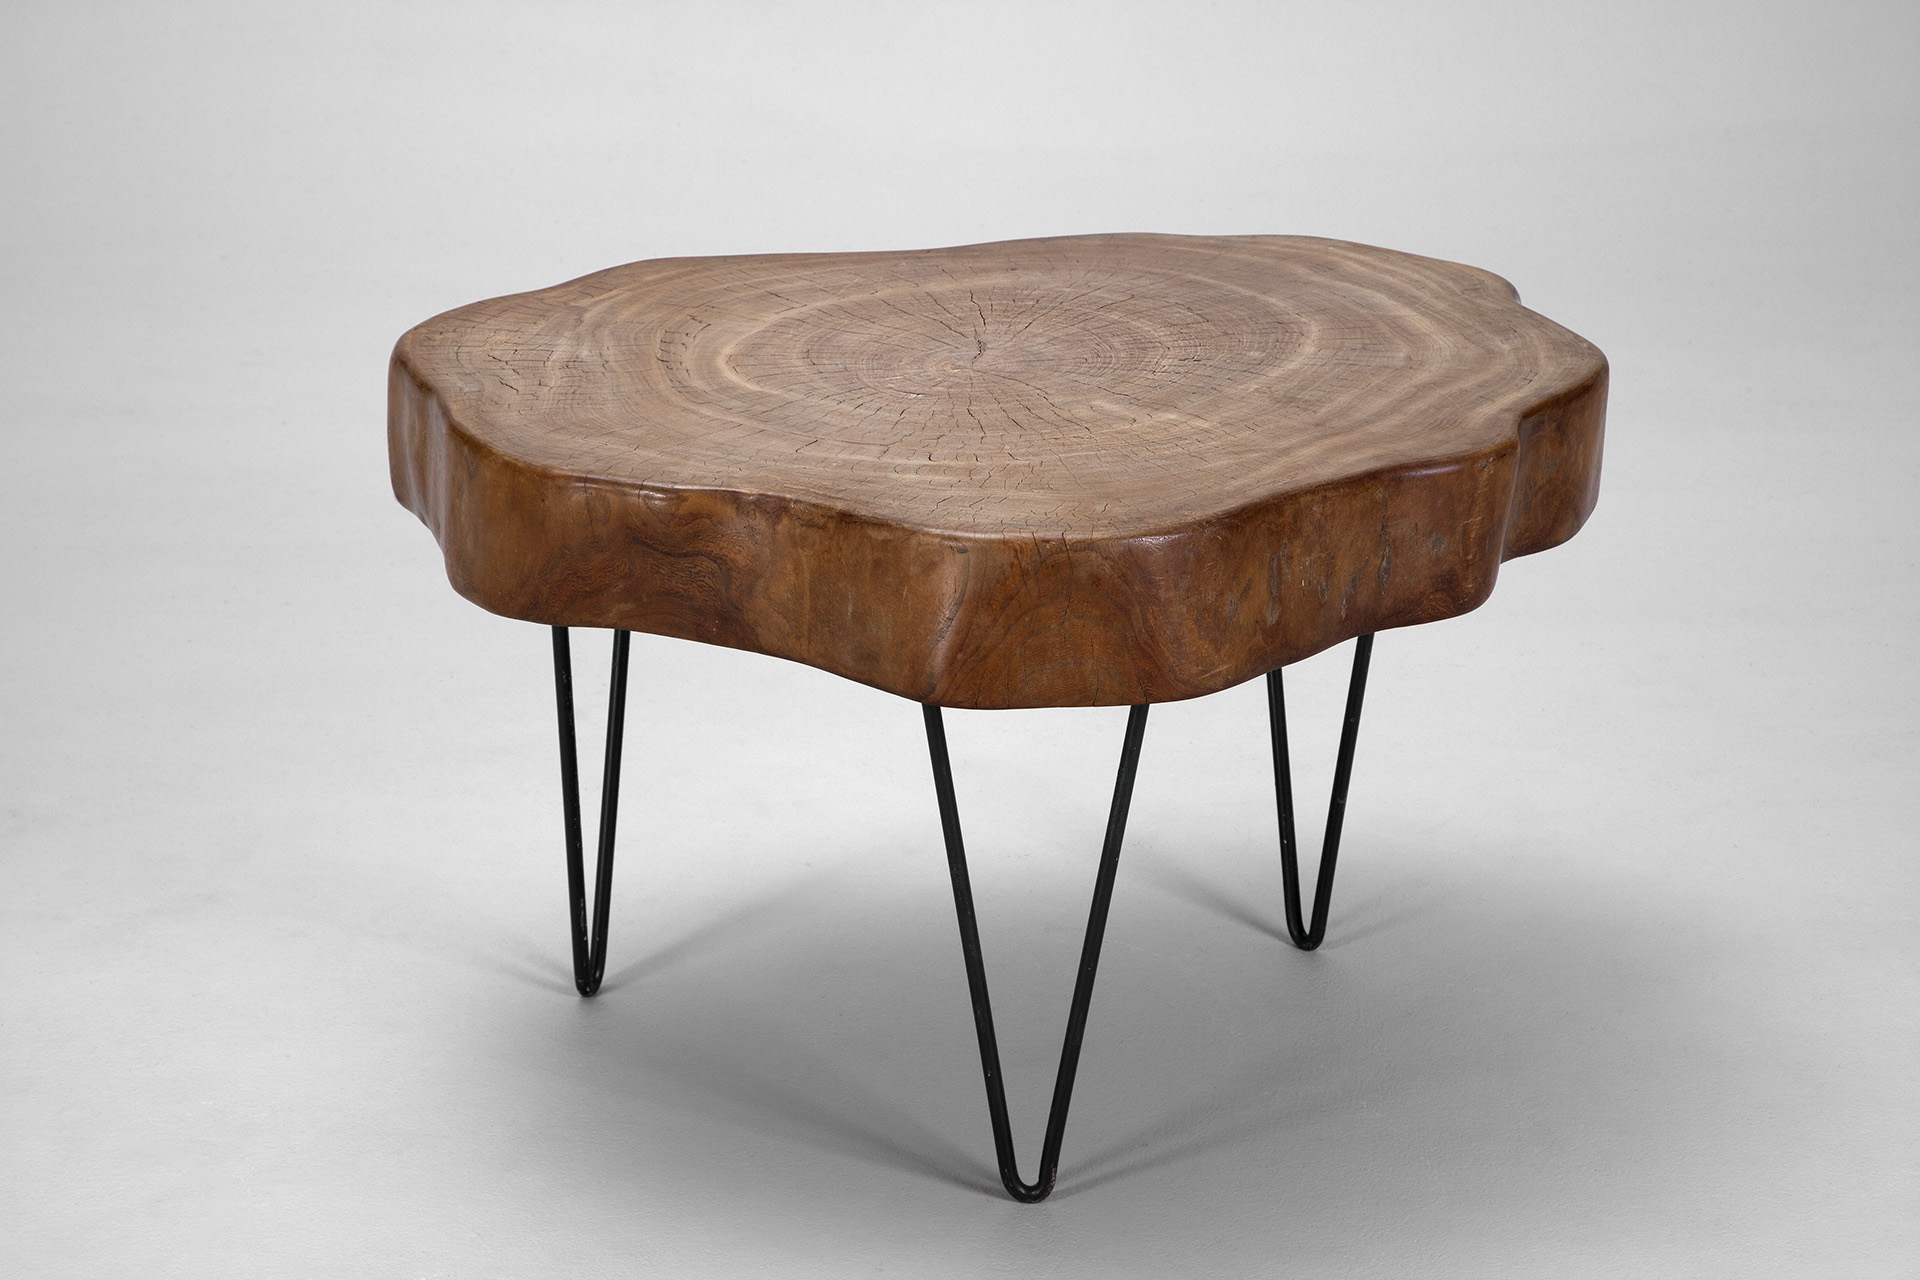 Jacksons Quot Tree Trunk Table Quot Pierre Jeanneret